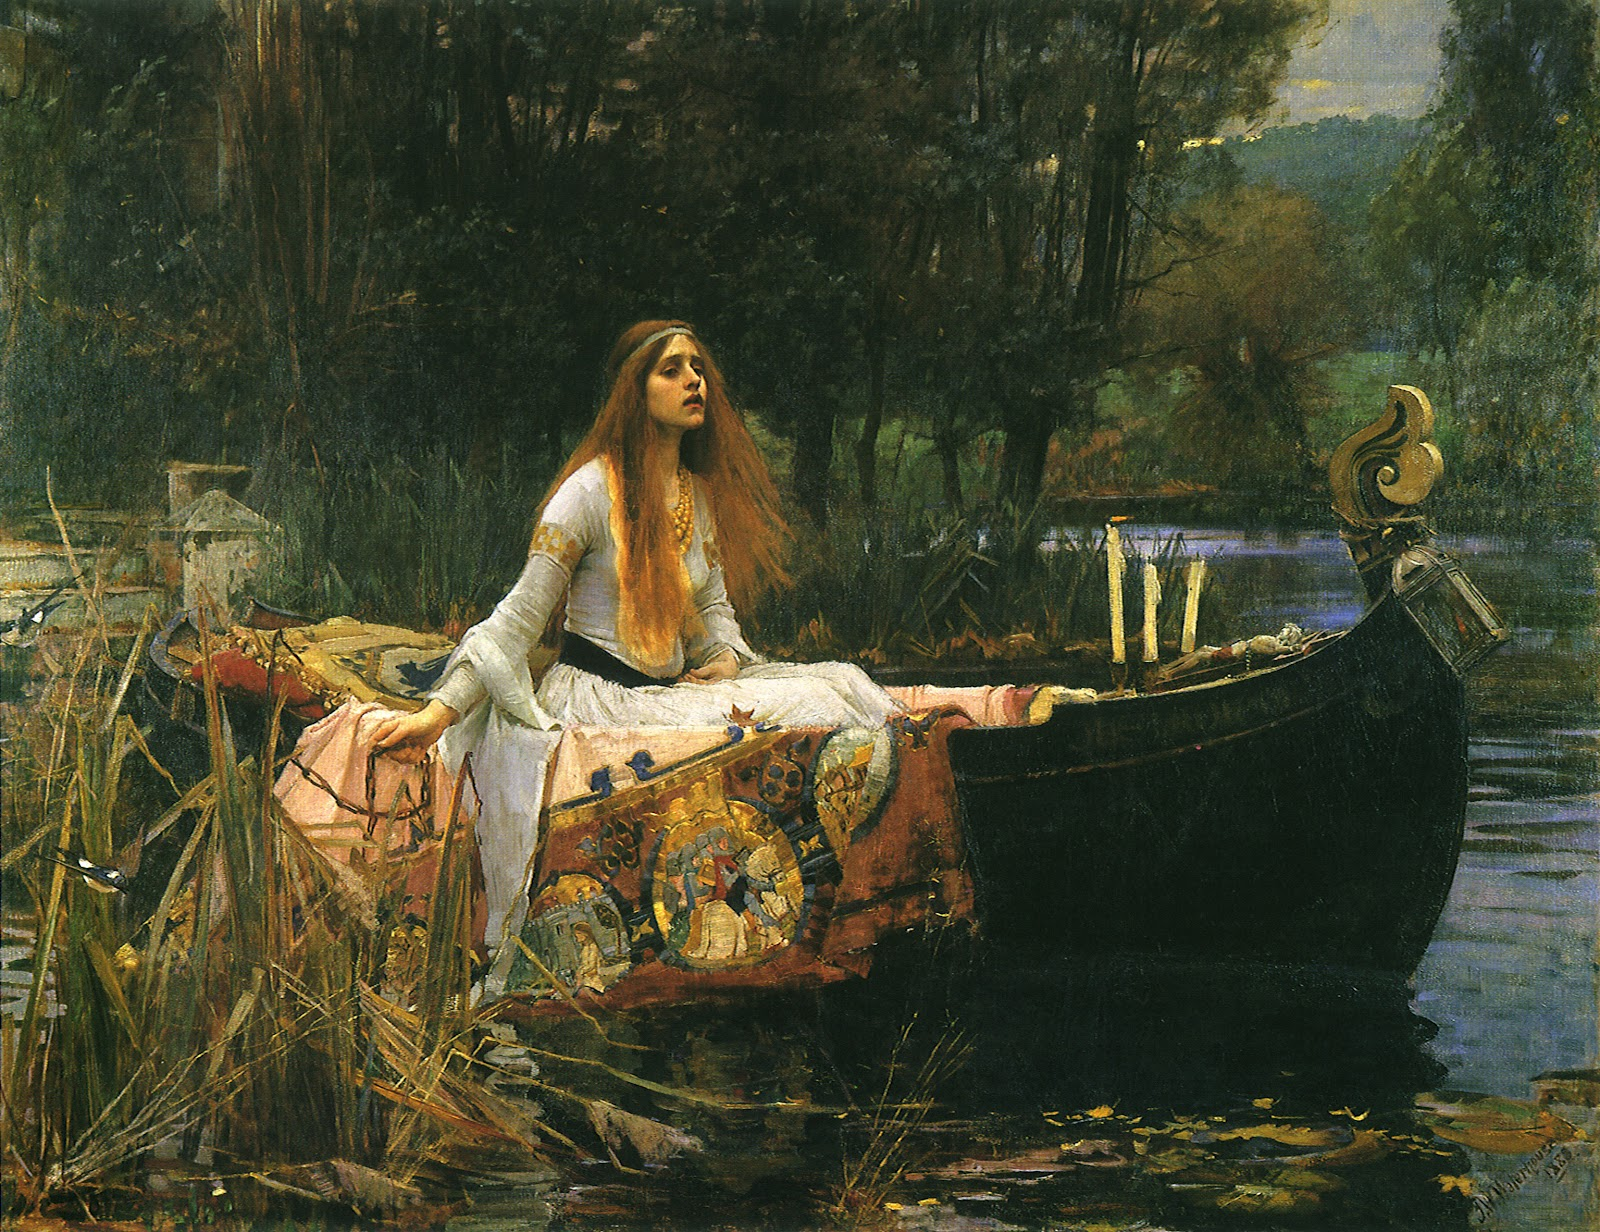 la memoria del arte la dama de shalott de john william waterhouse. Black Bedroom Furniture Sets. Home Design Ideas